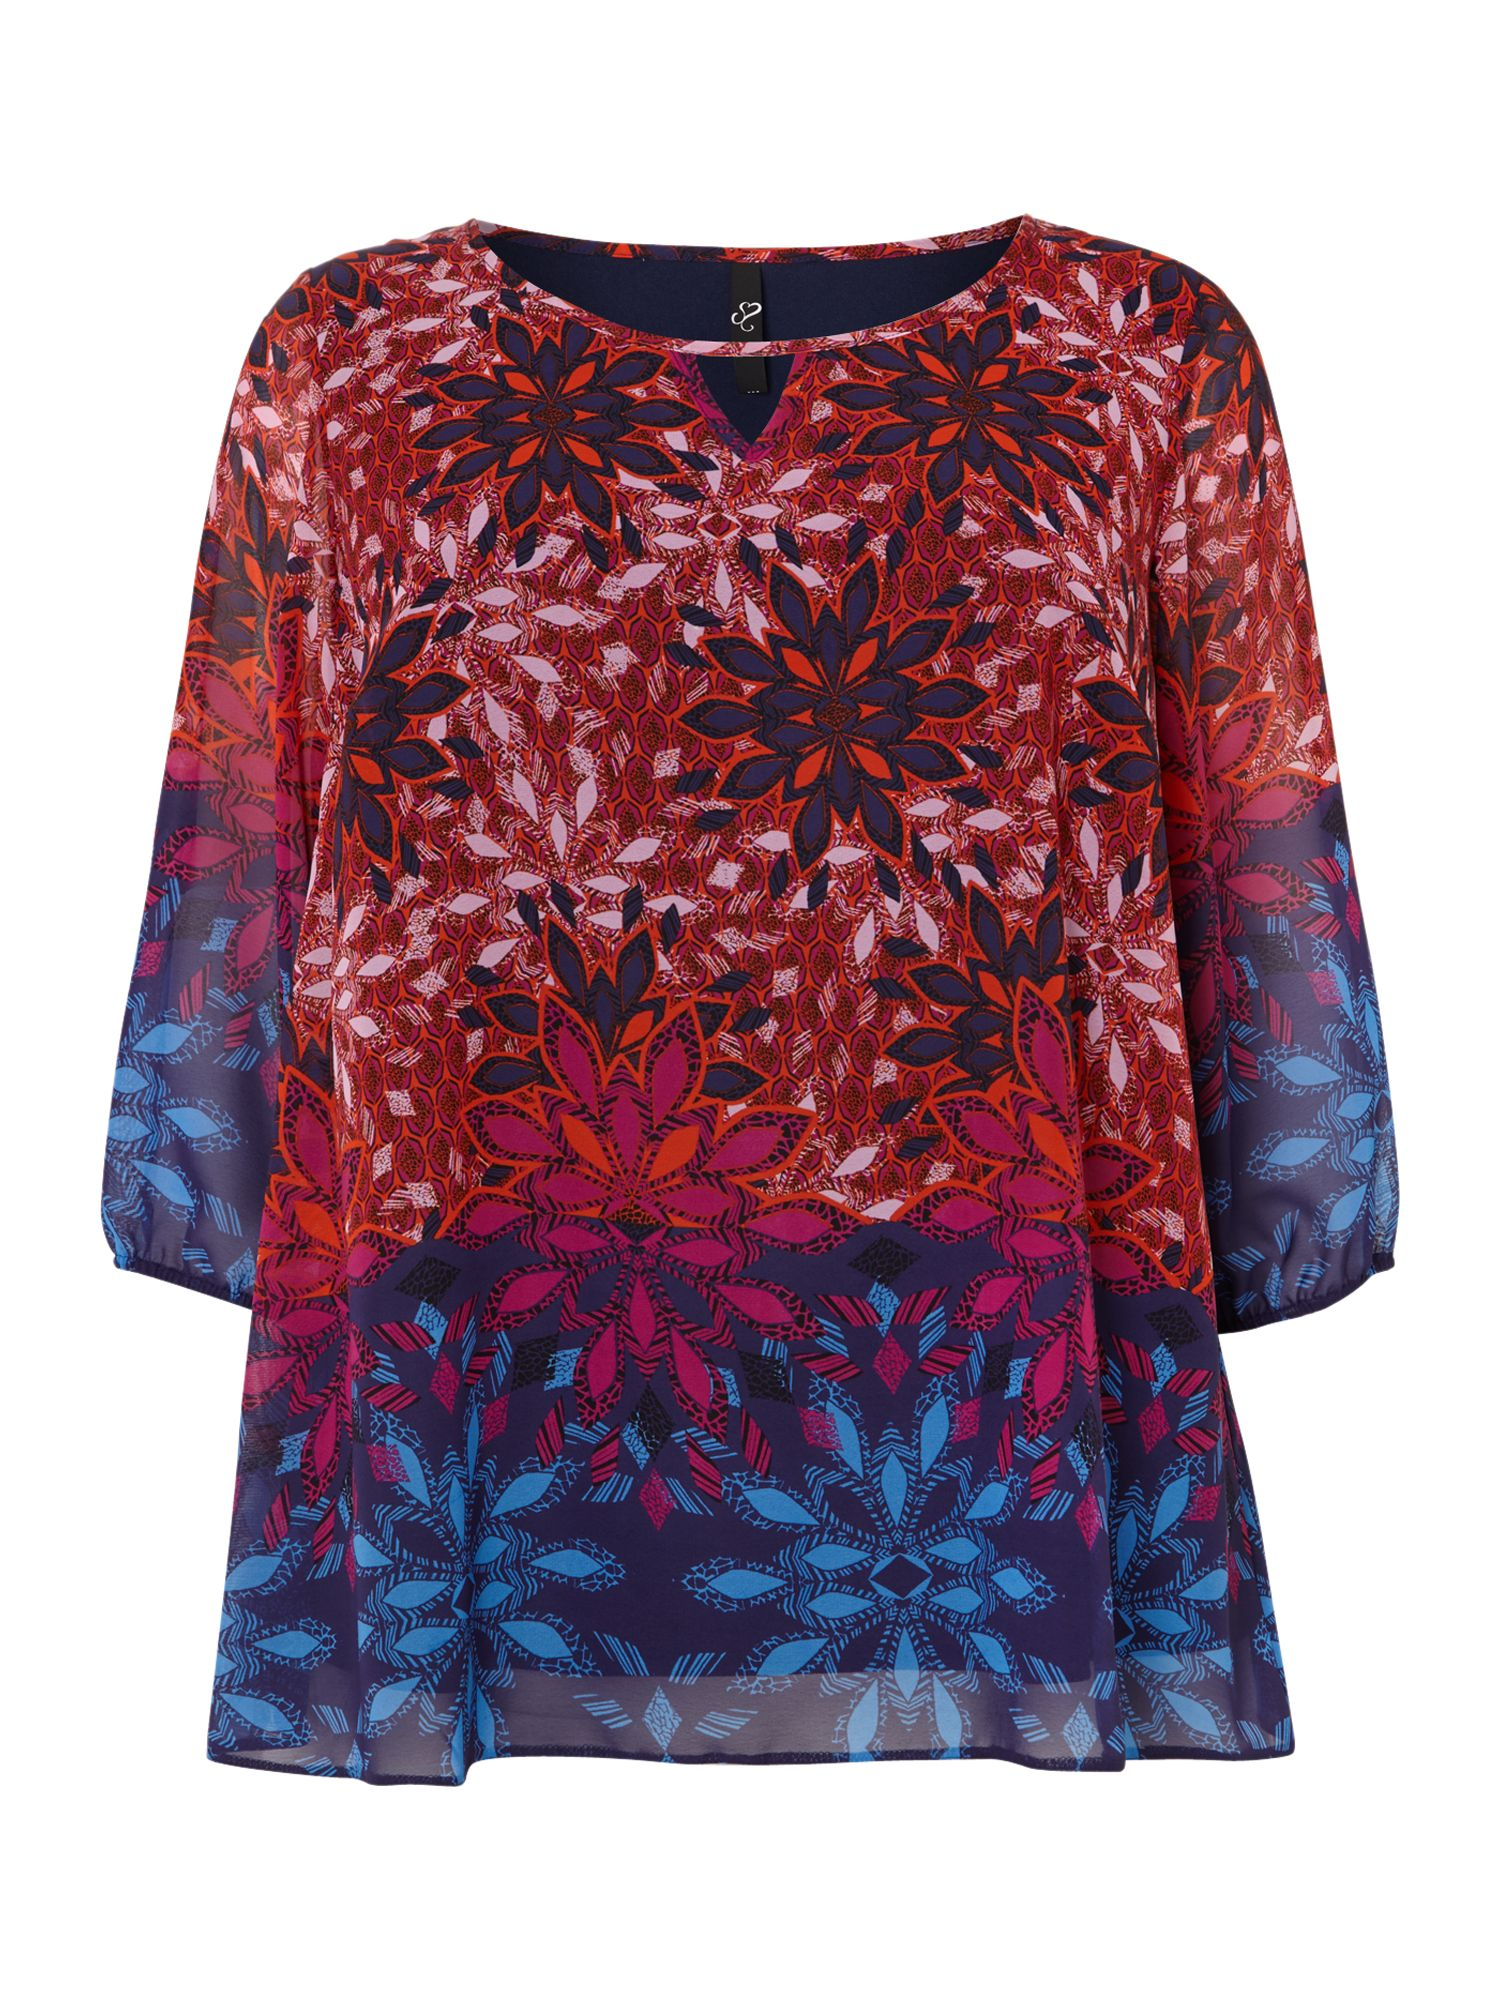 Global print border top